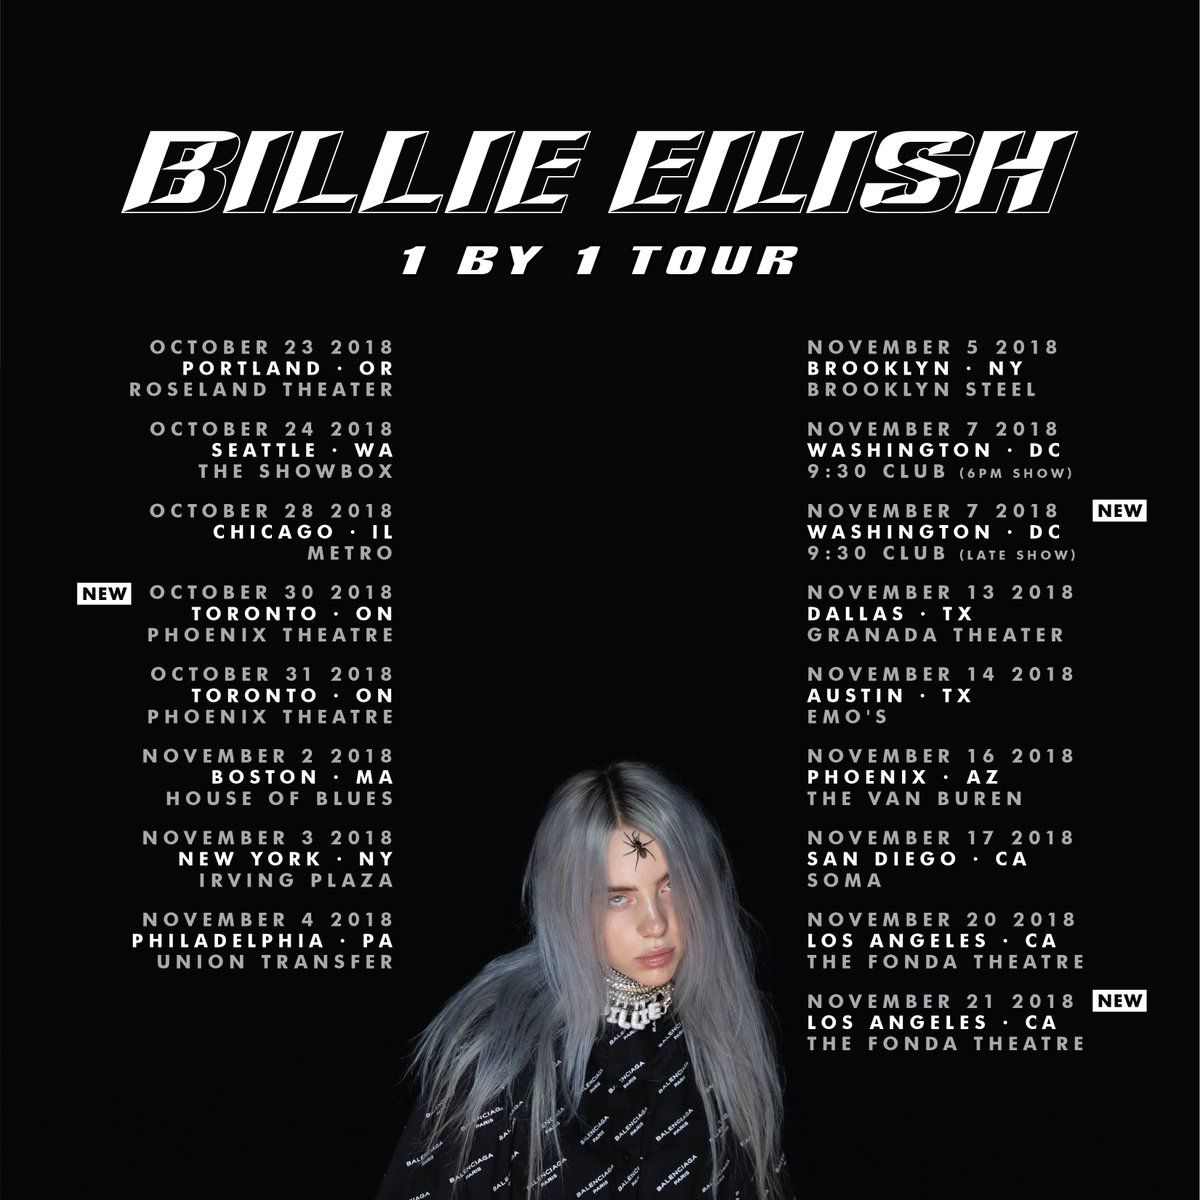 1 BY 1 TOUR ON SALE NOW billieeilish.com